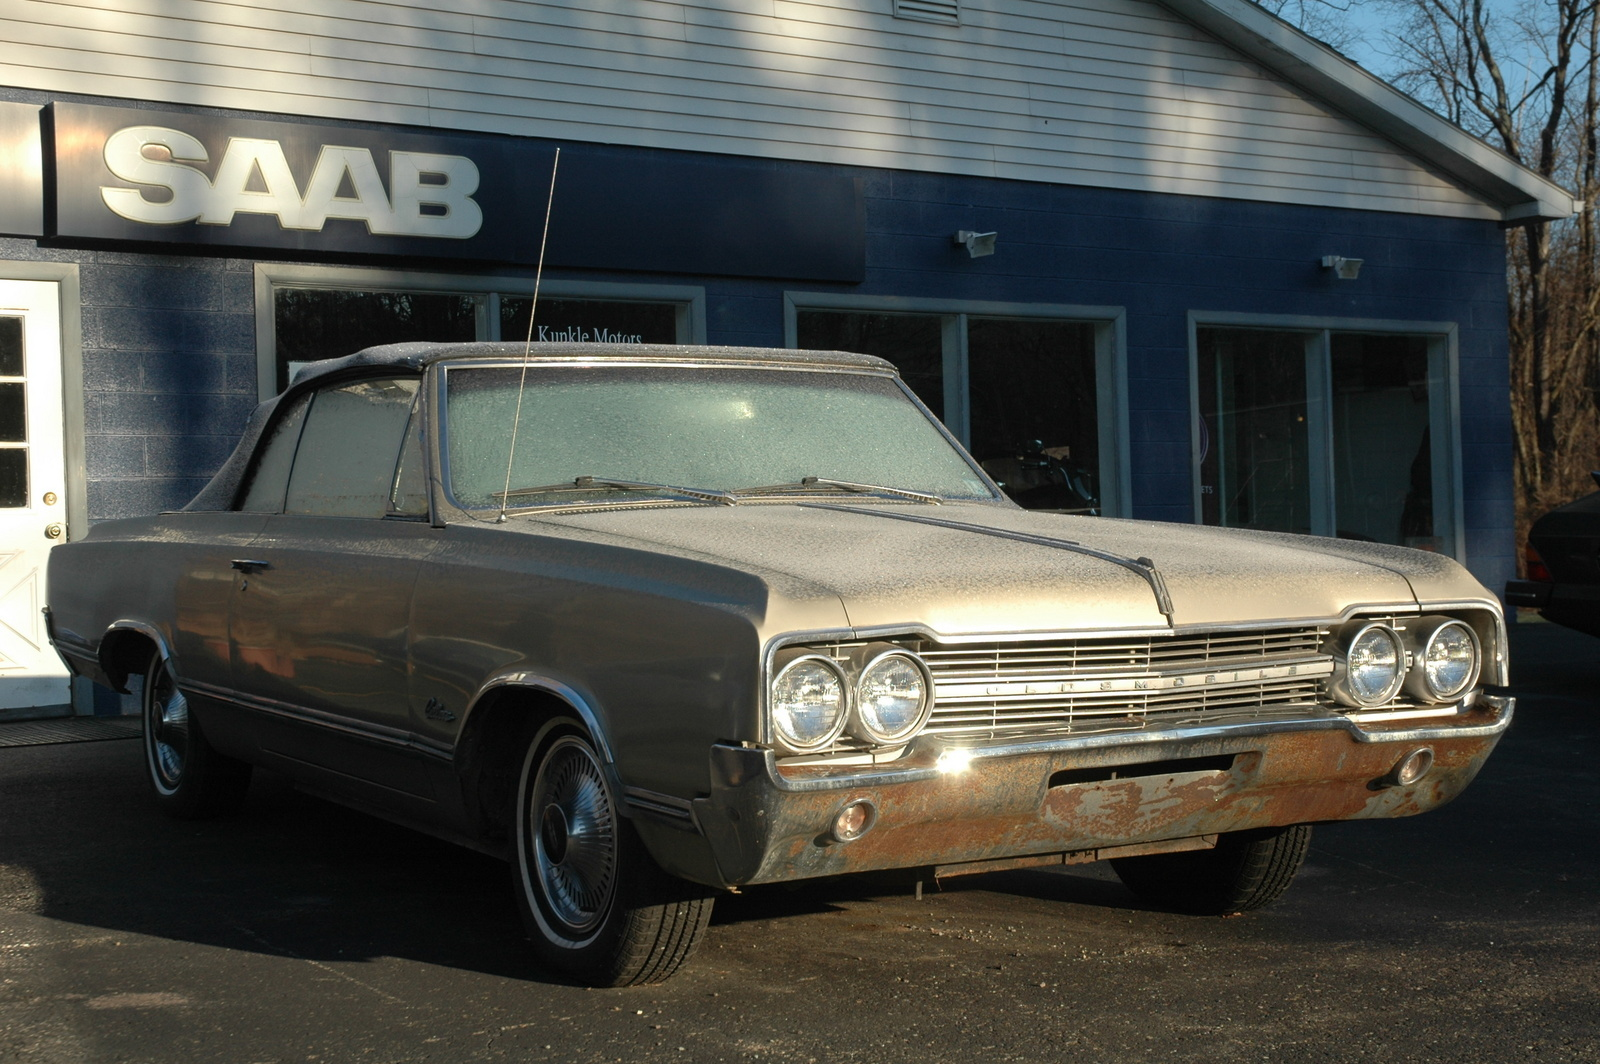 1964 Oldsmobile Cutlass - Overview